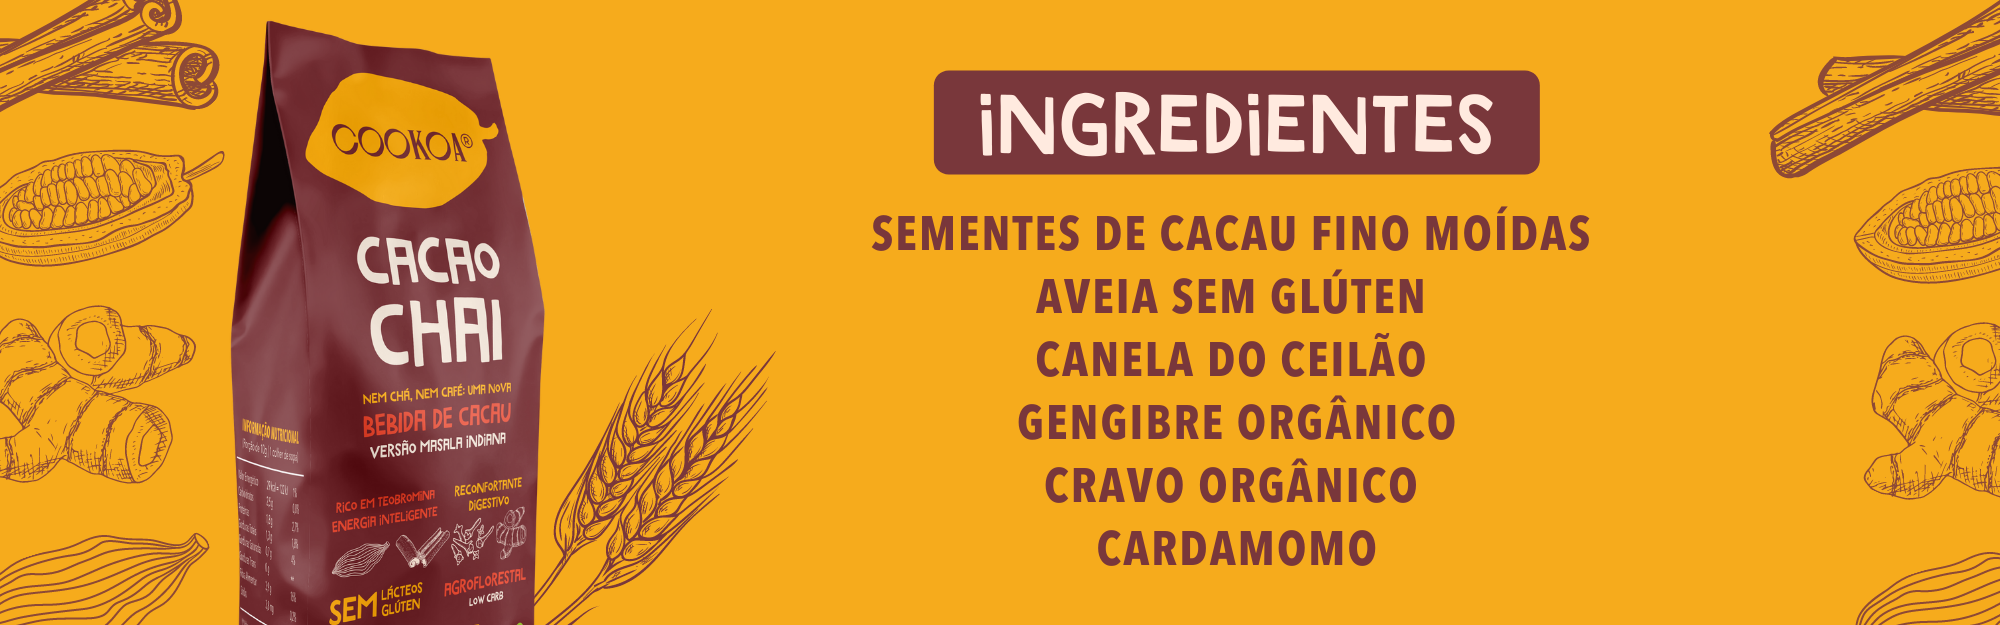 ingredientes cacao chai coooka